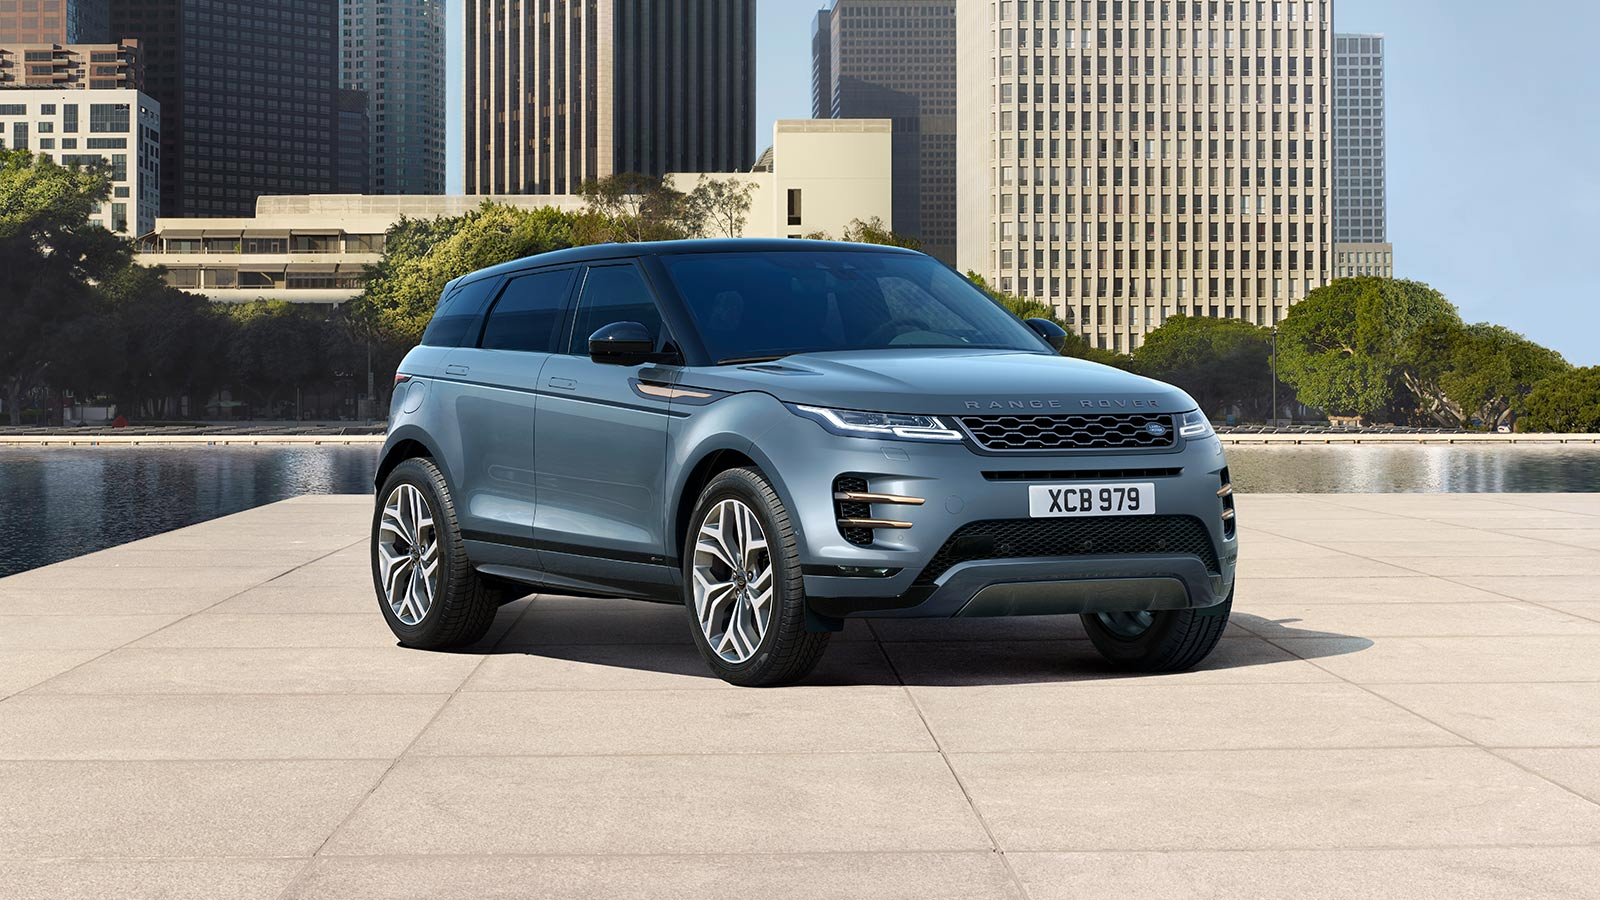 NIEUWE RANGE ROVER EVOQUE FIRST EDITION